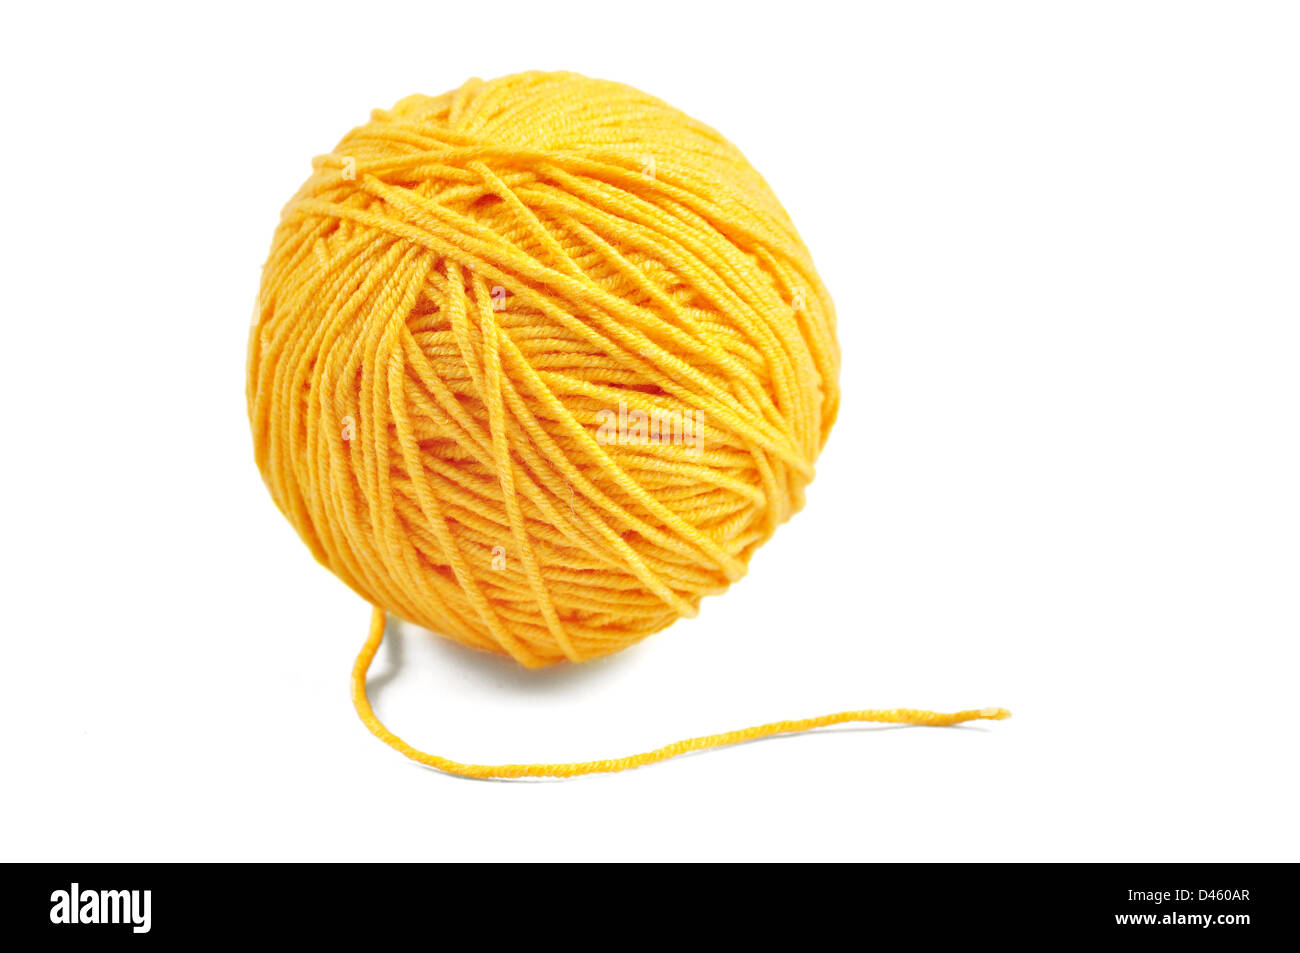 Yellow wool yarn ball isolated on white background - Stock Image